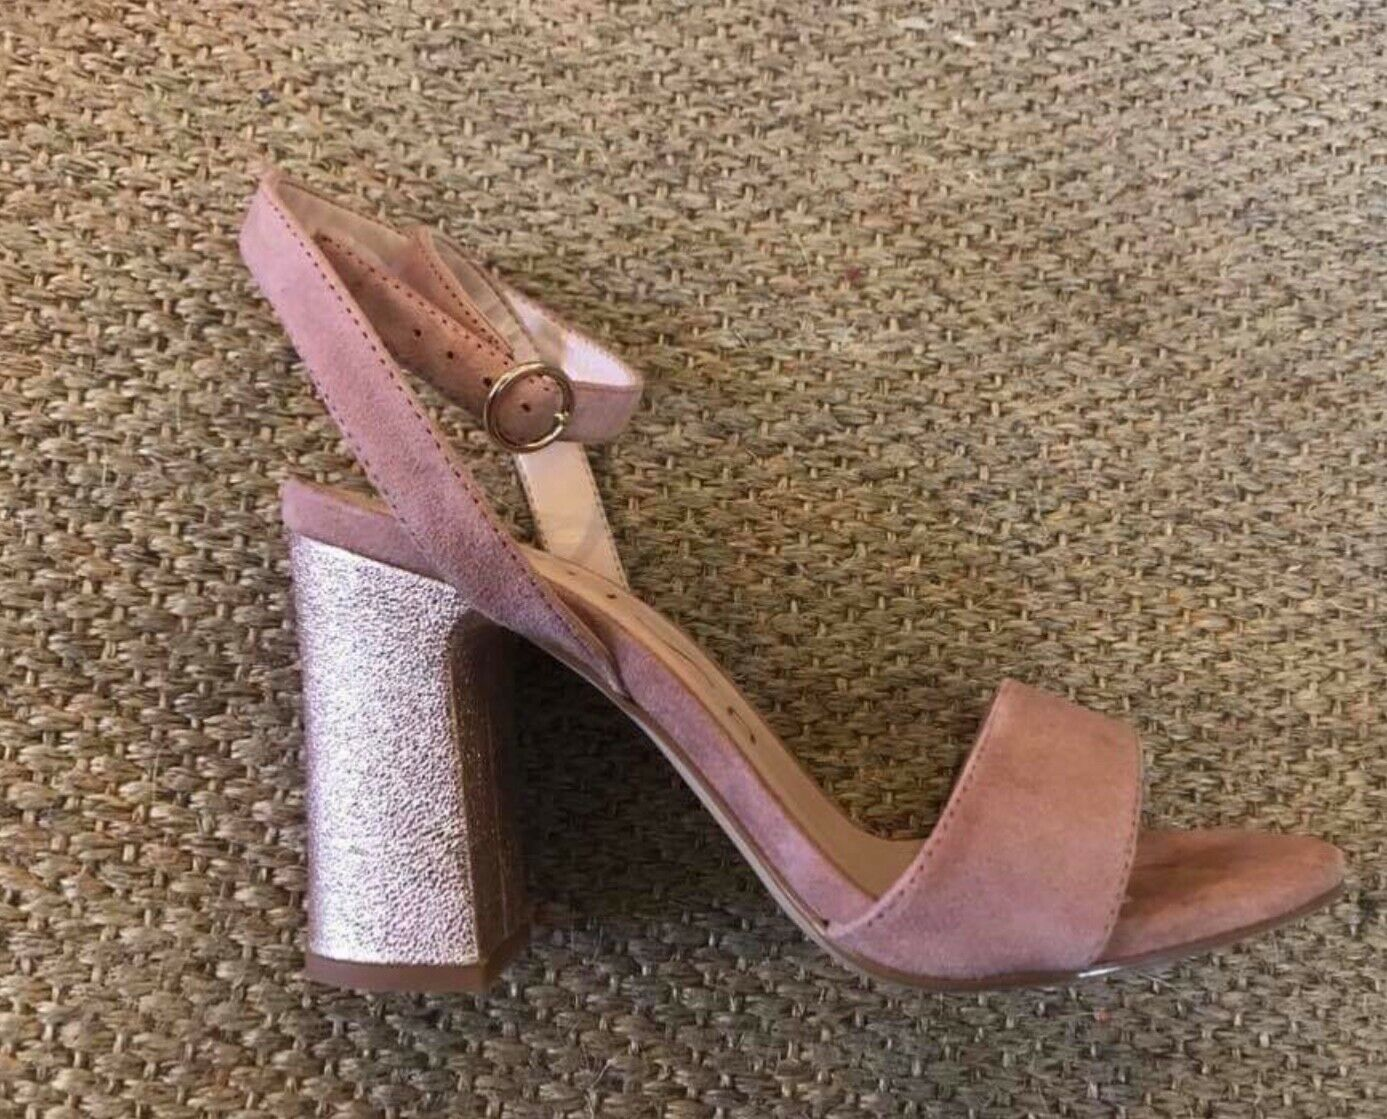 New super comfy suede leather nude pink gold unisa sandals size 39  uk 6